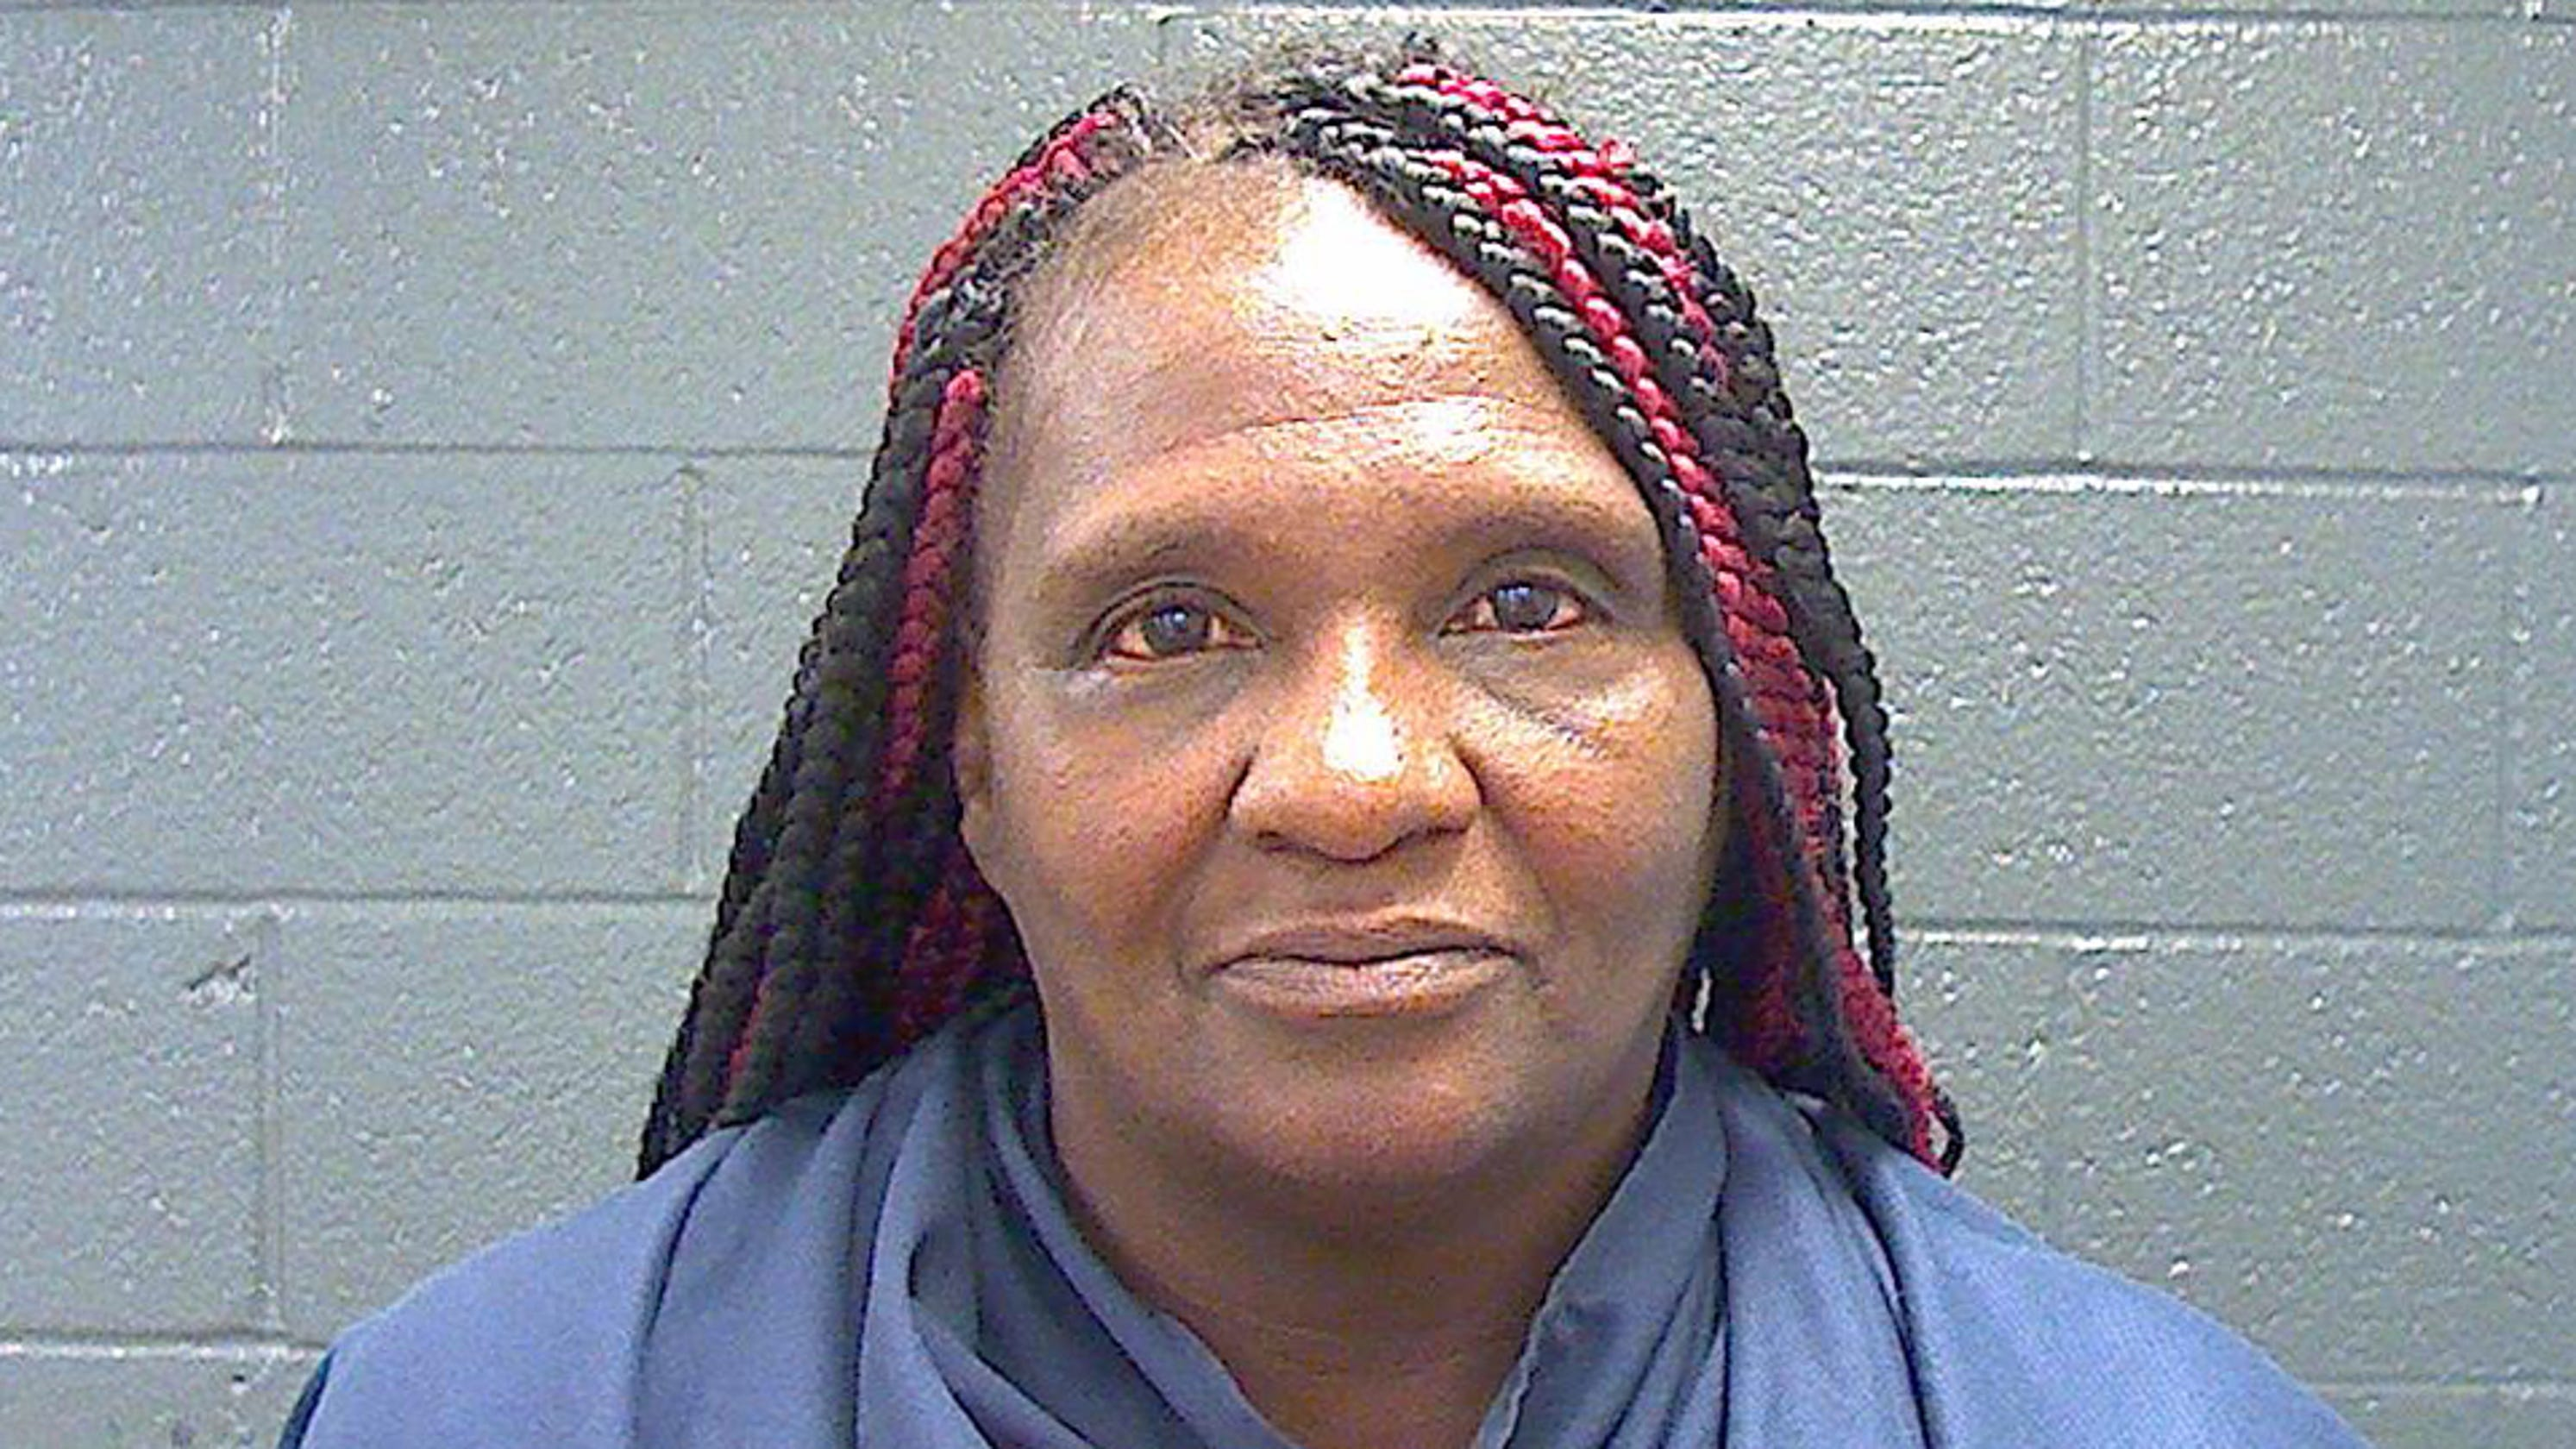 WFPD: Woman arrested for trying to steal 3 lollipops from